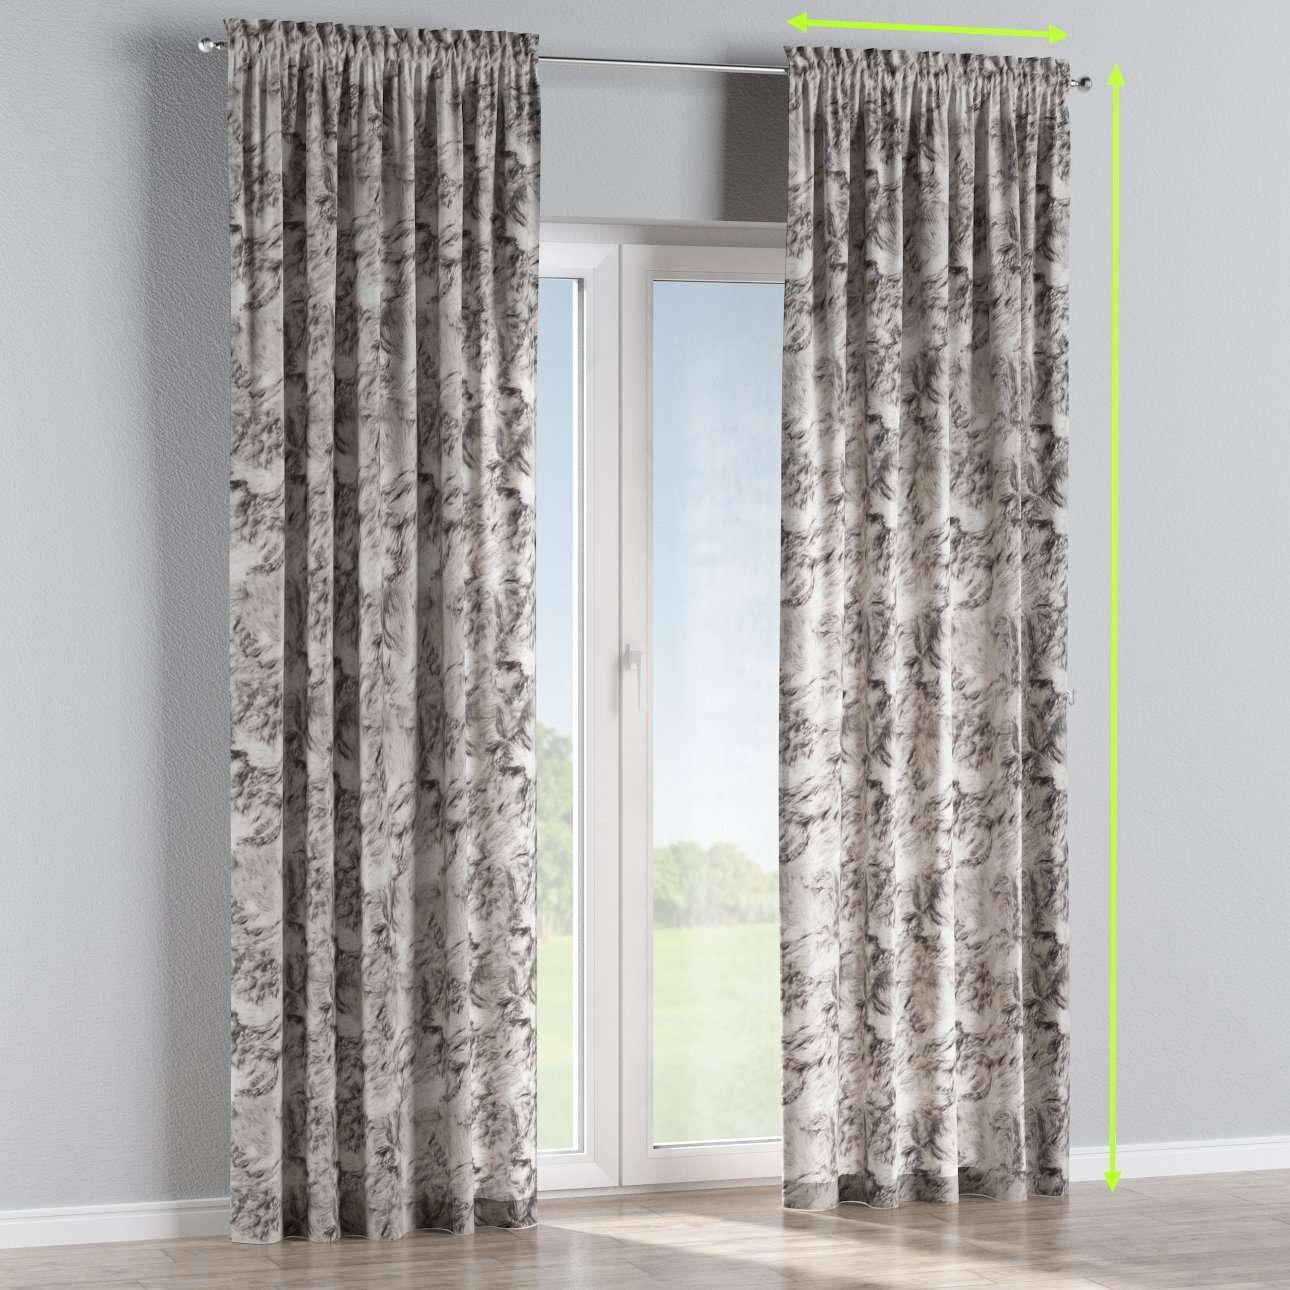 Slot and frill lined curtains in collection Norge, fabric: 140-82